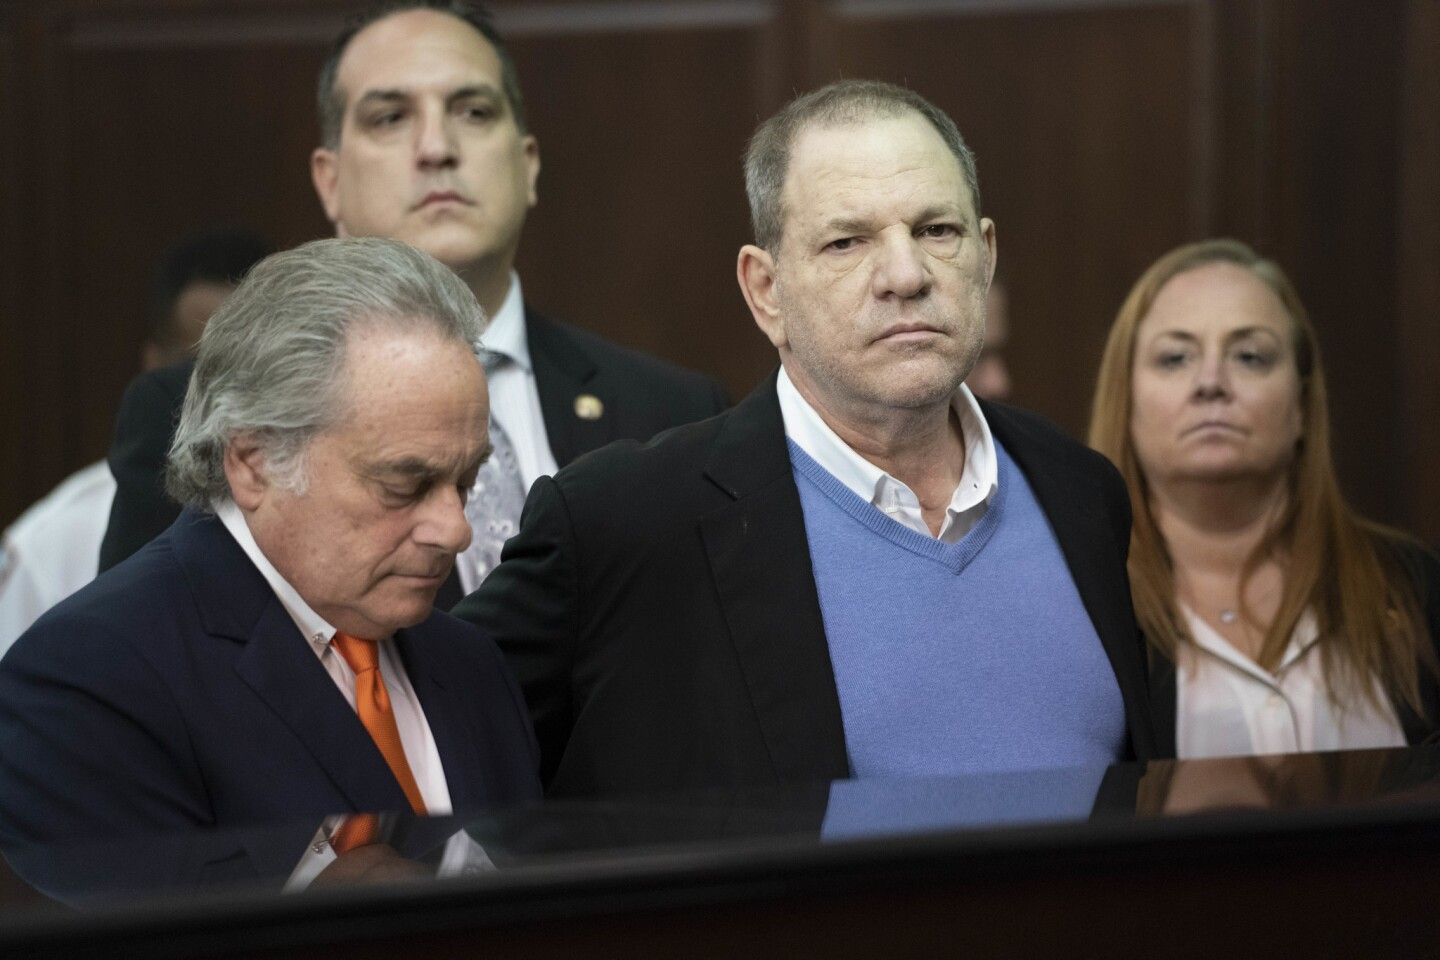 Harvey Weinstein, center, appears with his attorney Benjamin Brafman before a judge Friday morning in Manhattan, where he was charged with rape and other sex crimes.